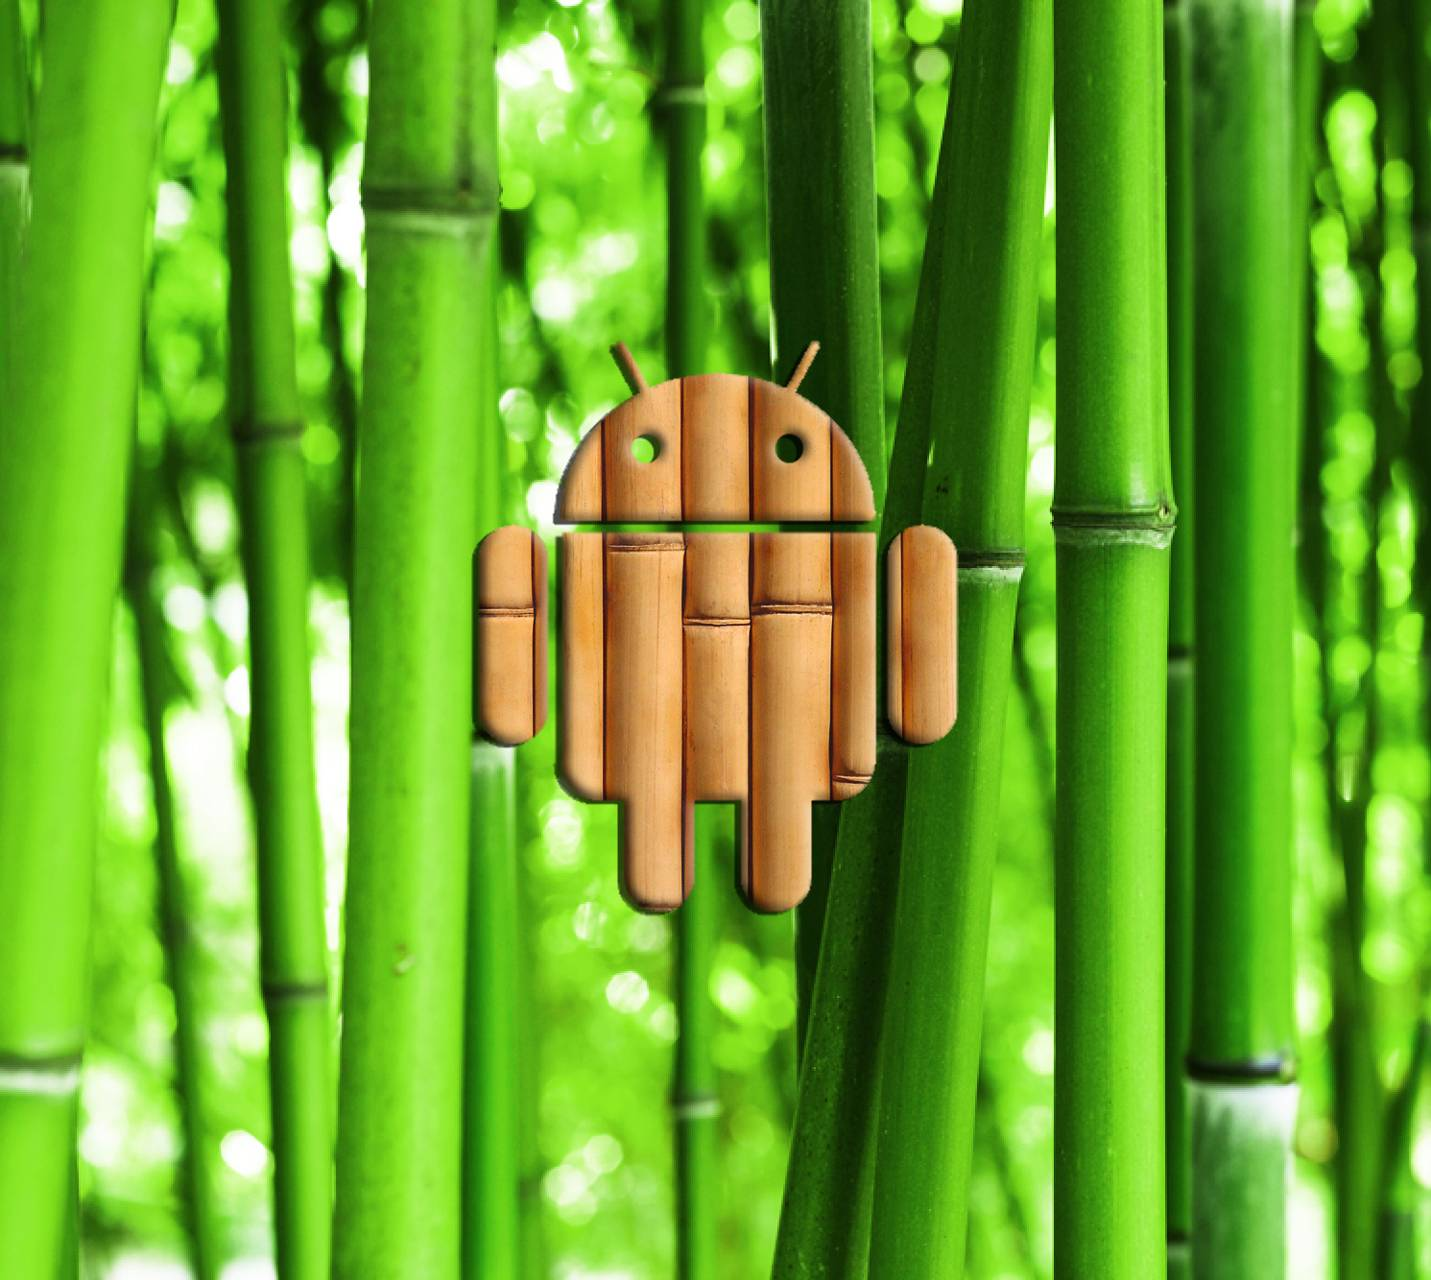 Android Bambus Wallpaper By Ghsam 5d Free On Zedge